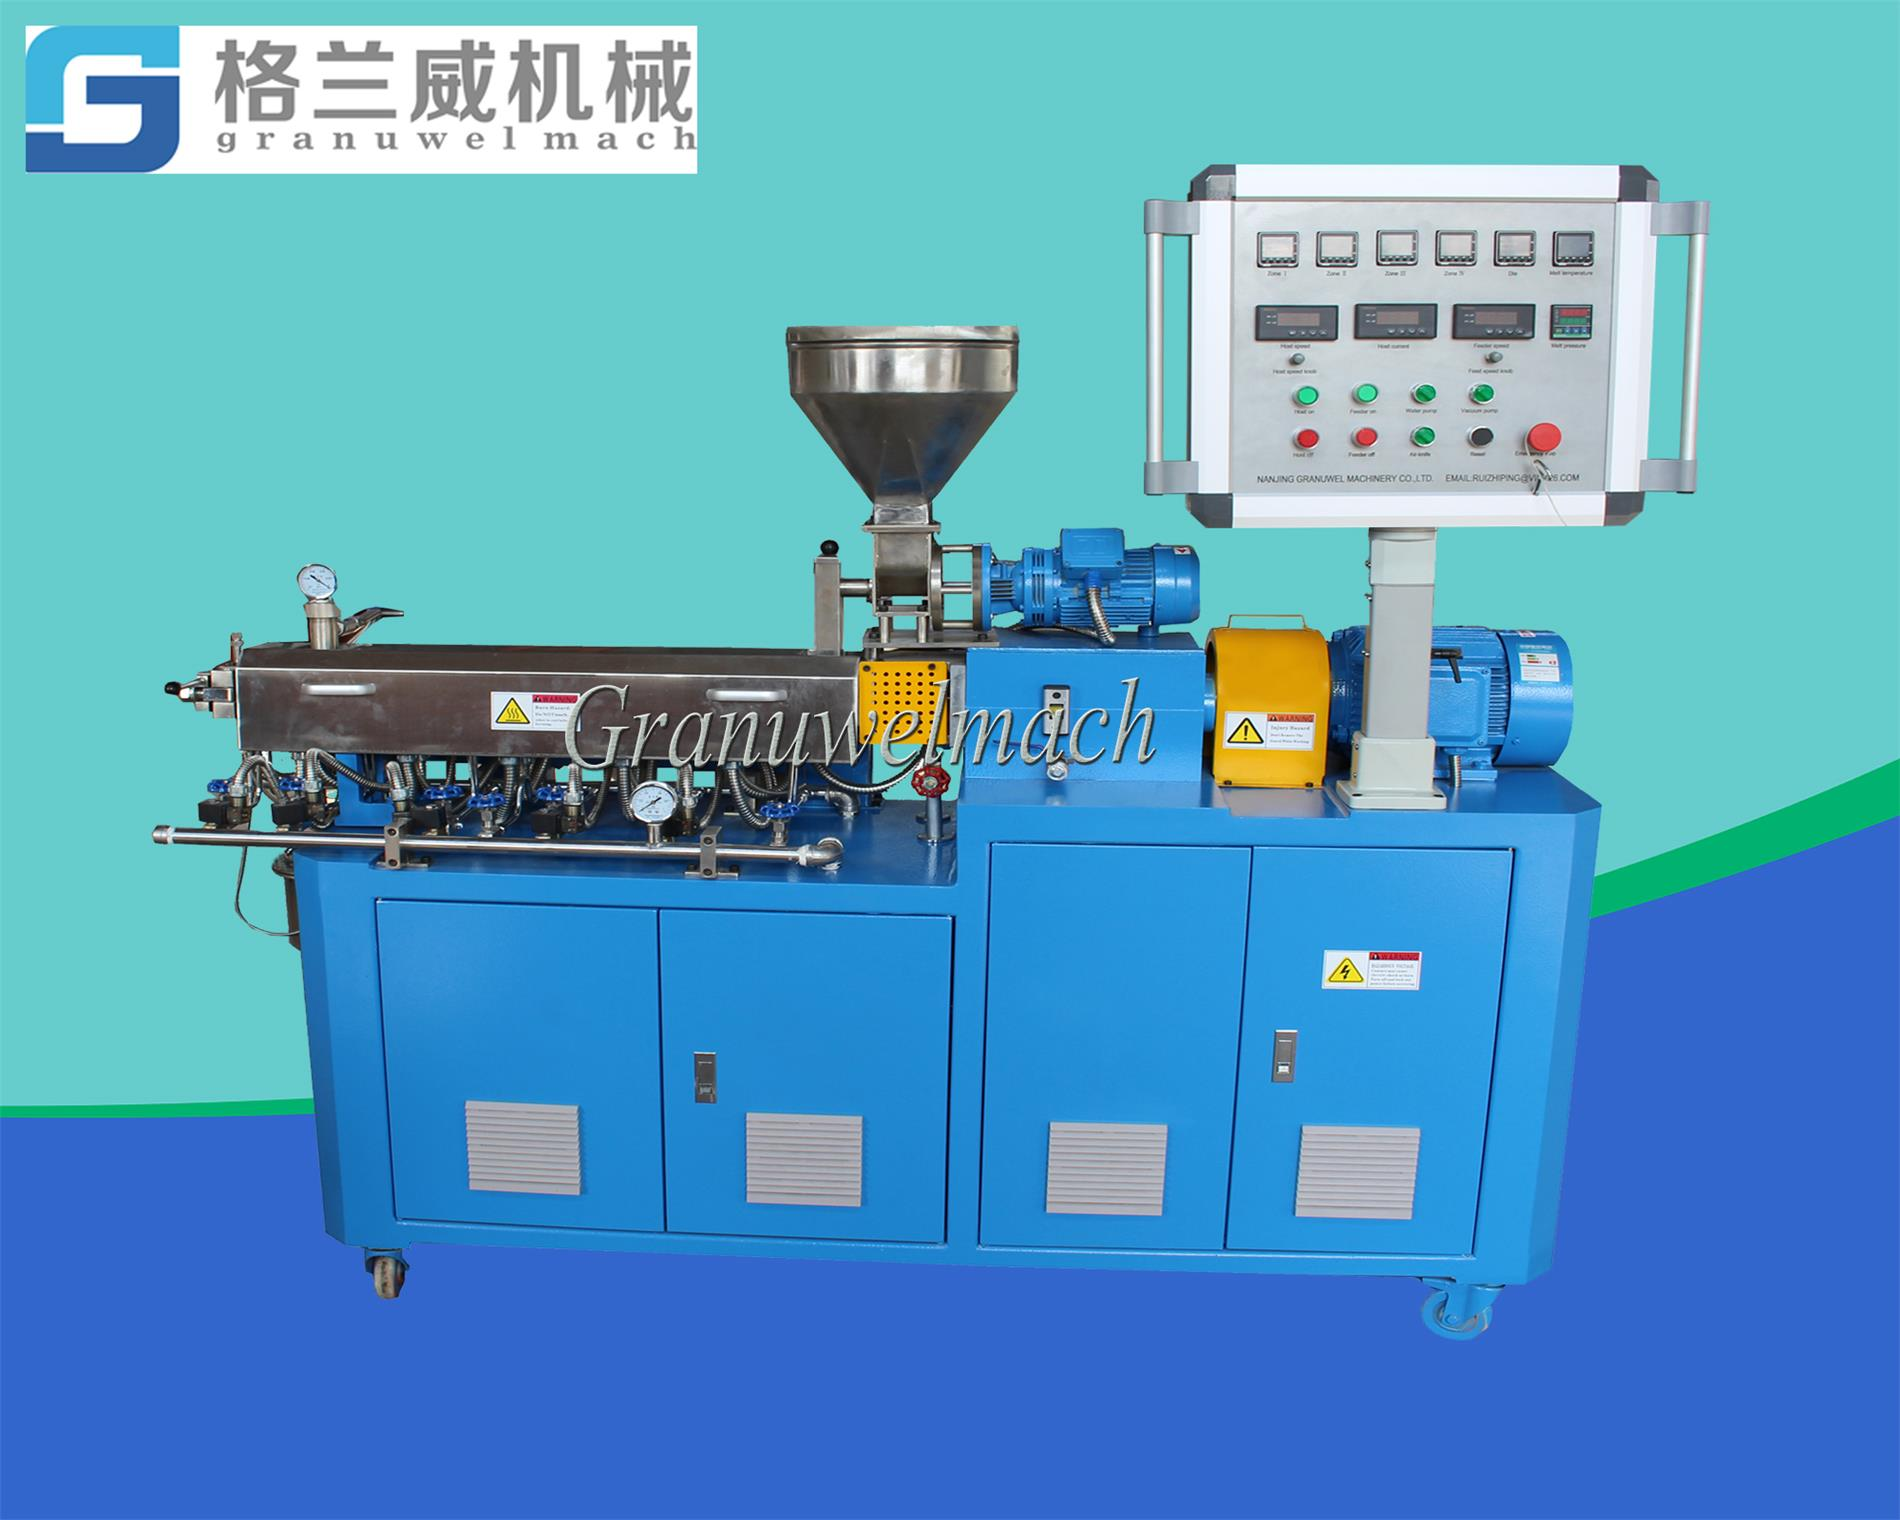 20mm plastic twin screw extruder,granulator,pelletizer for laboratory